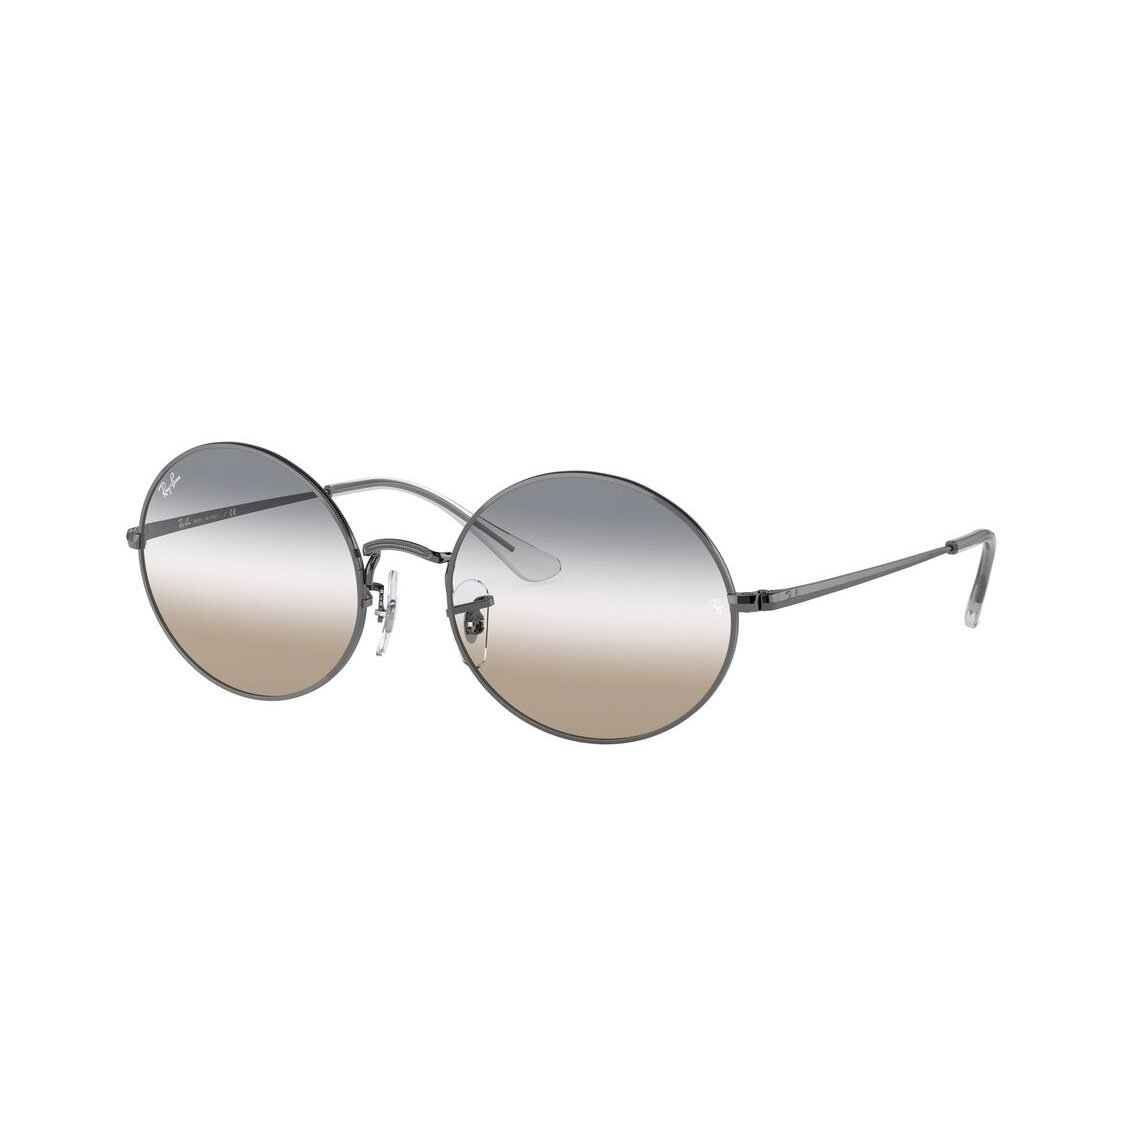 Ray-Ban Oval RB1970 004/GH 5419